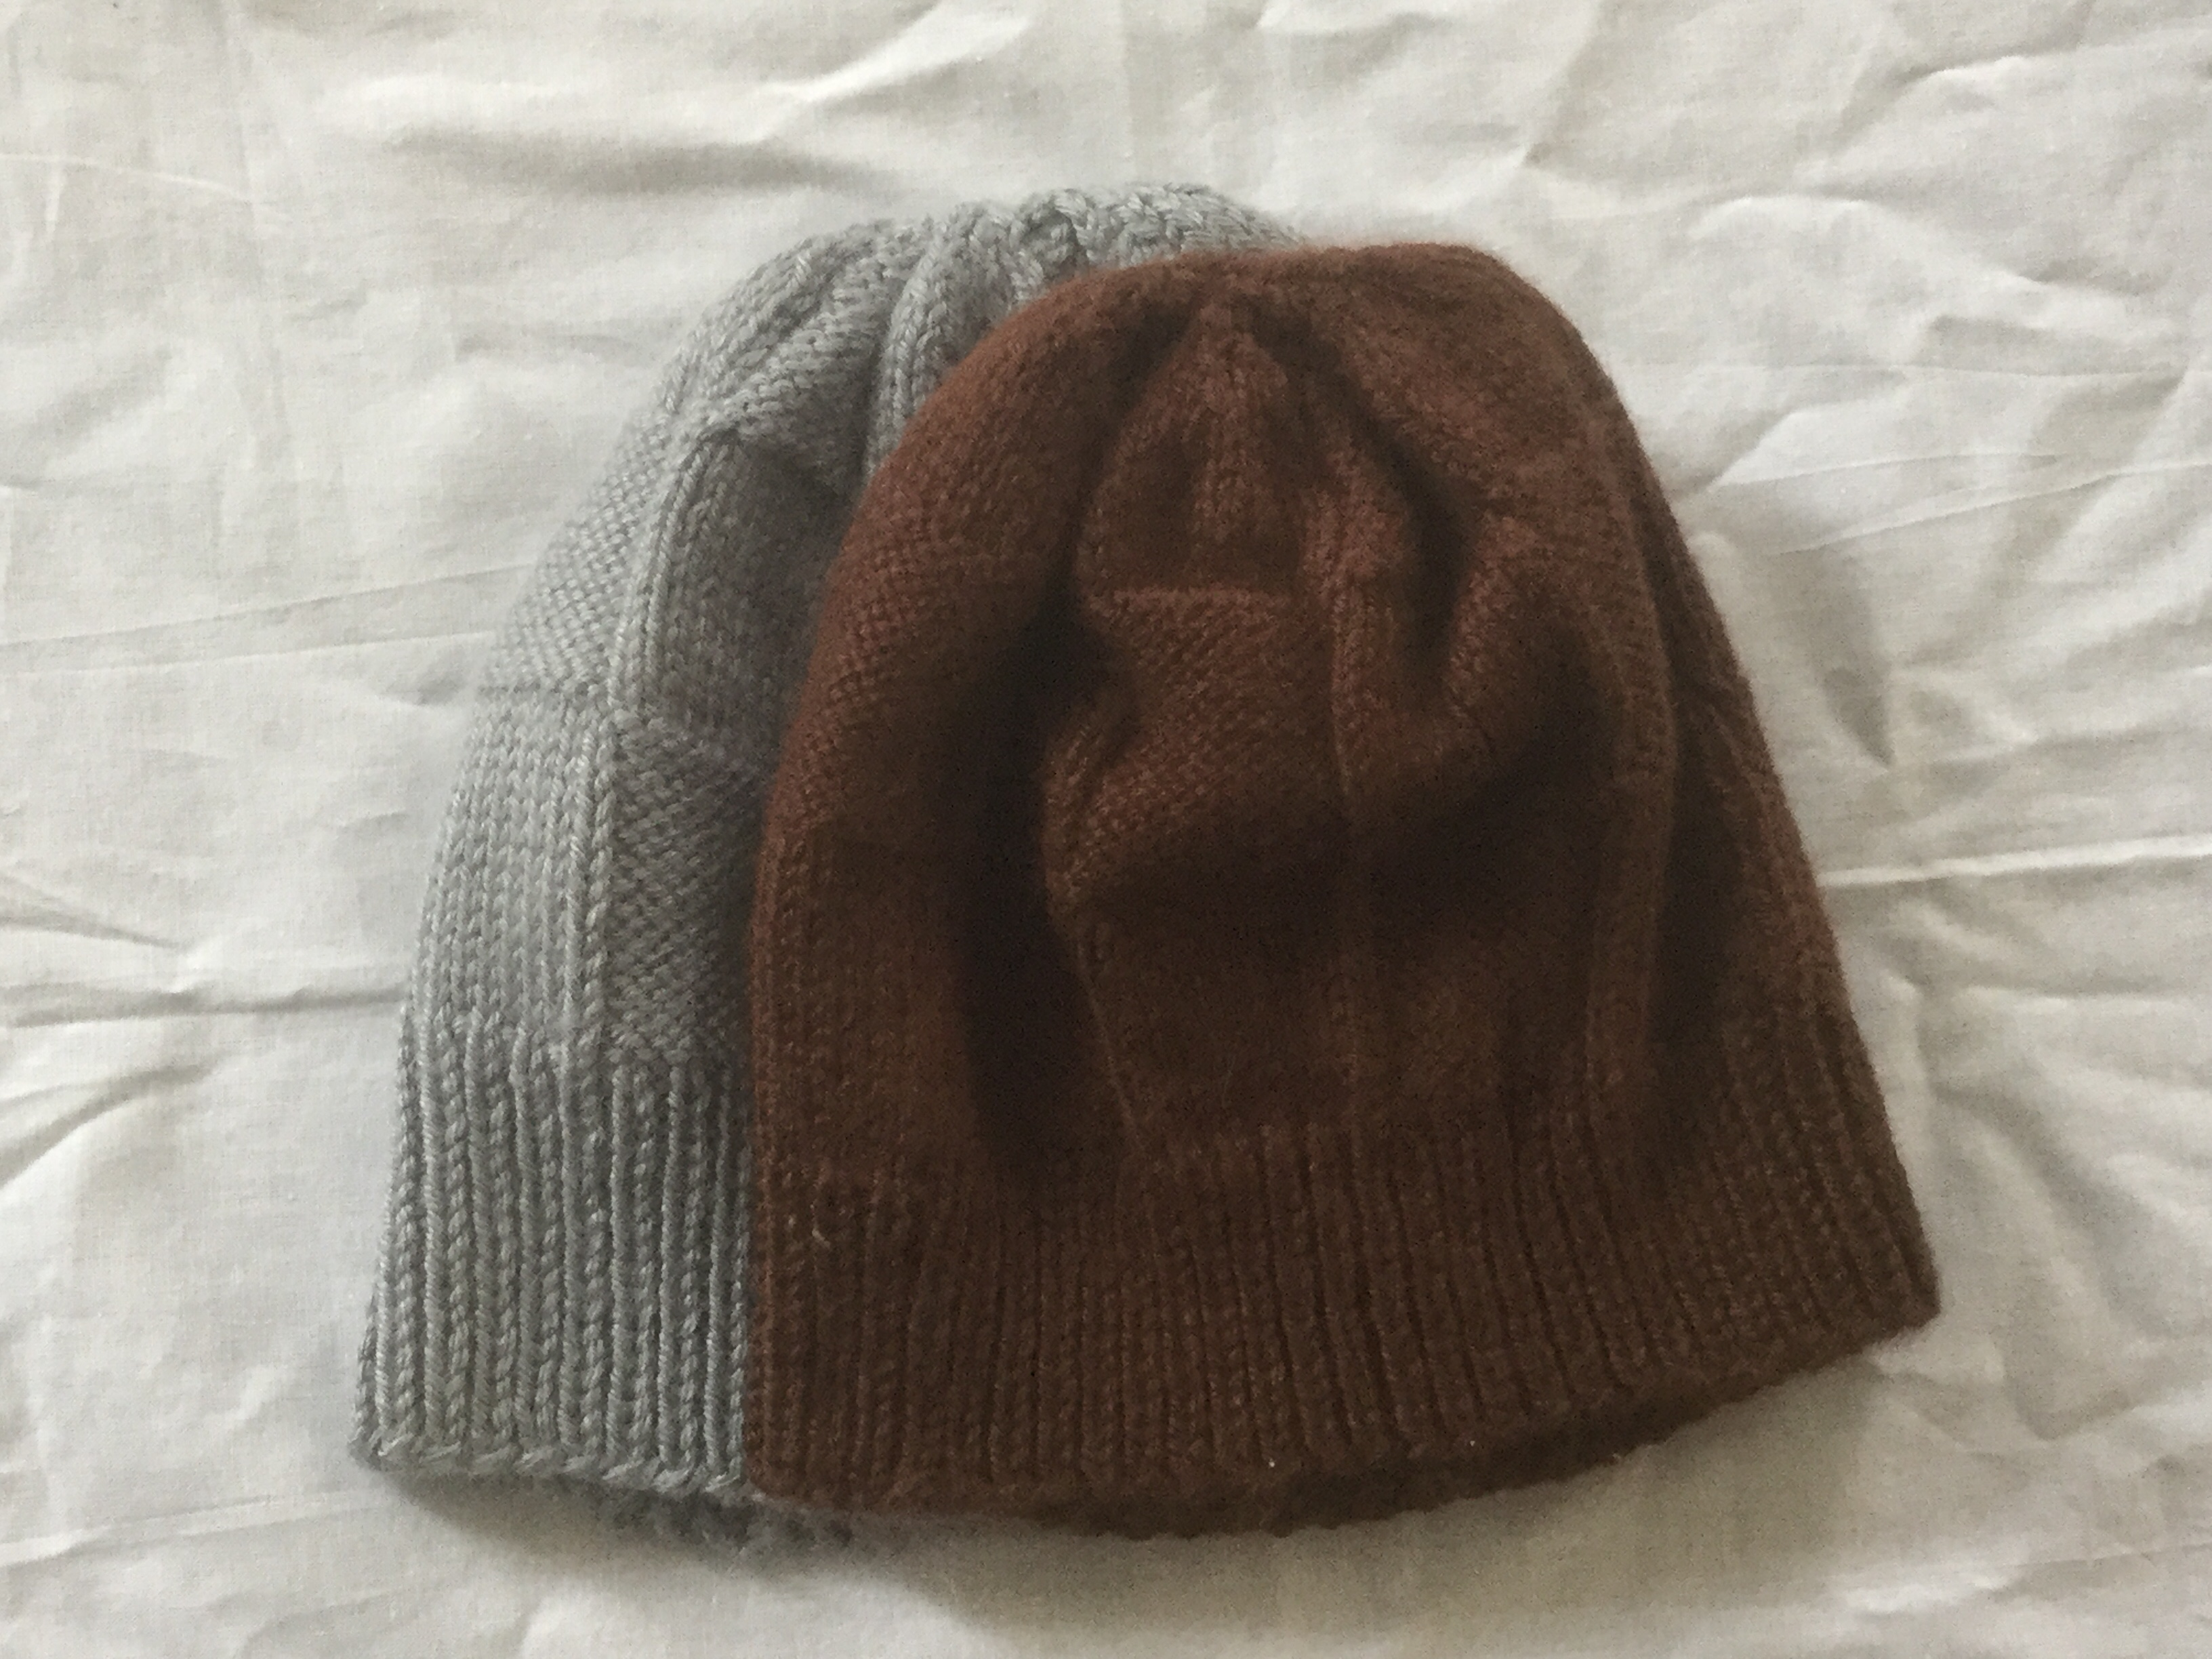 Adult Checkerboard Beanies, sizes Median and Ultra.